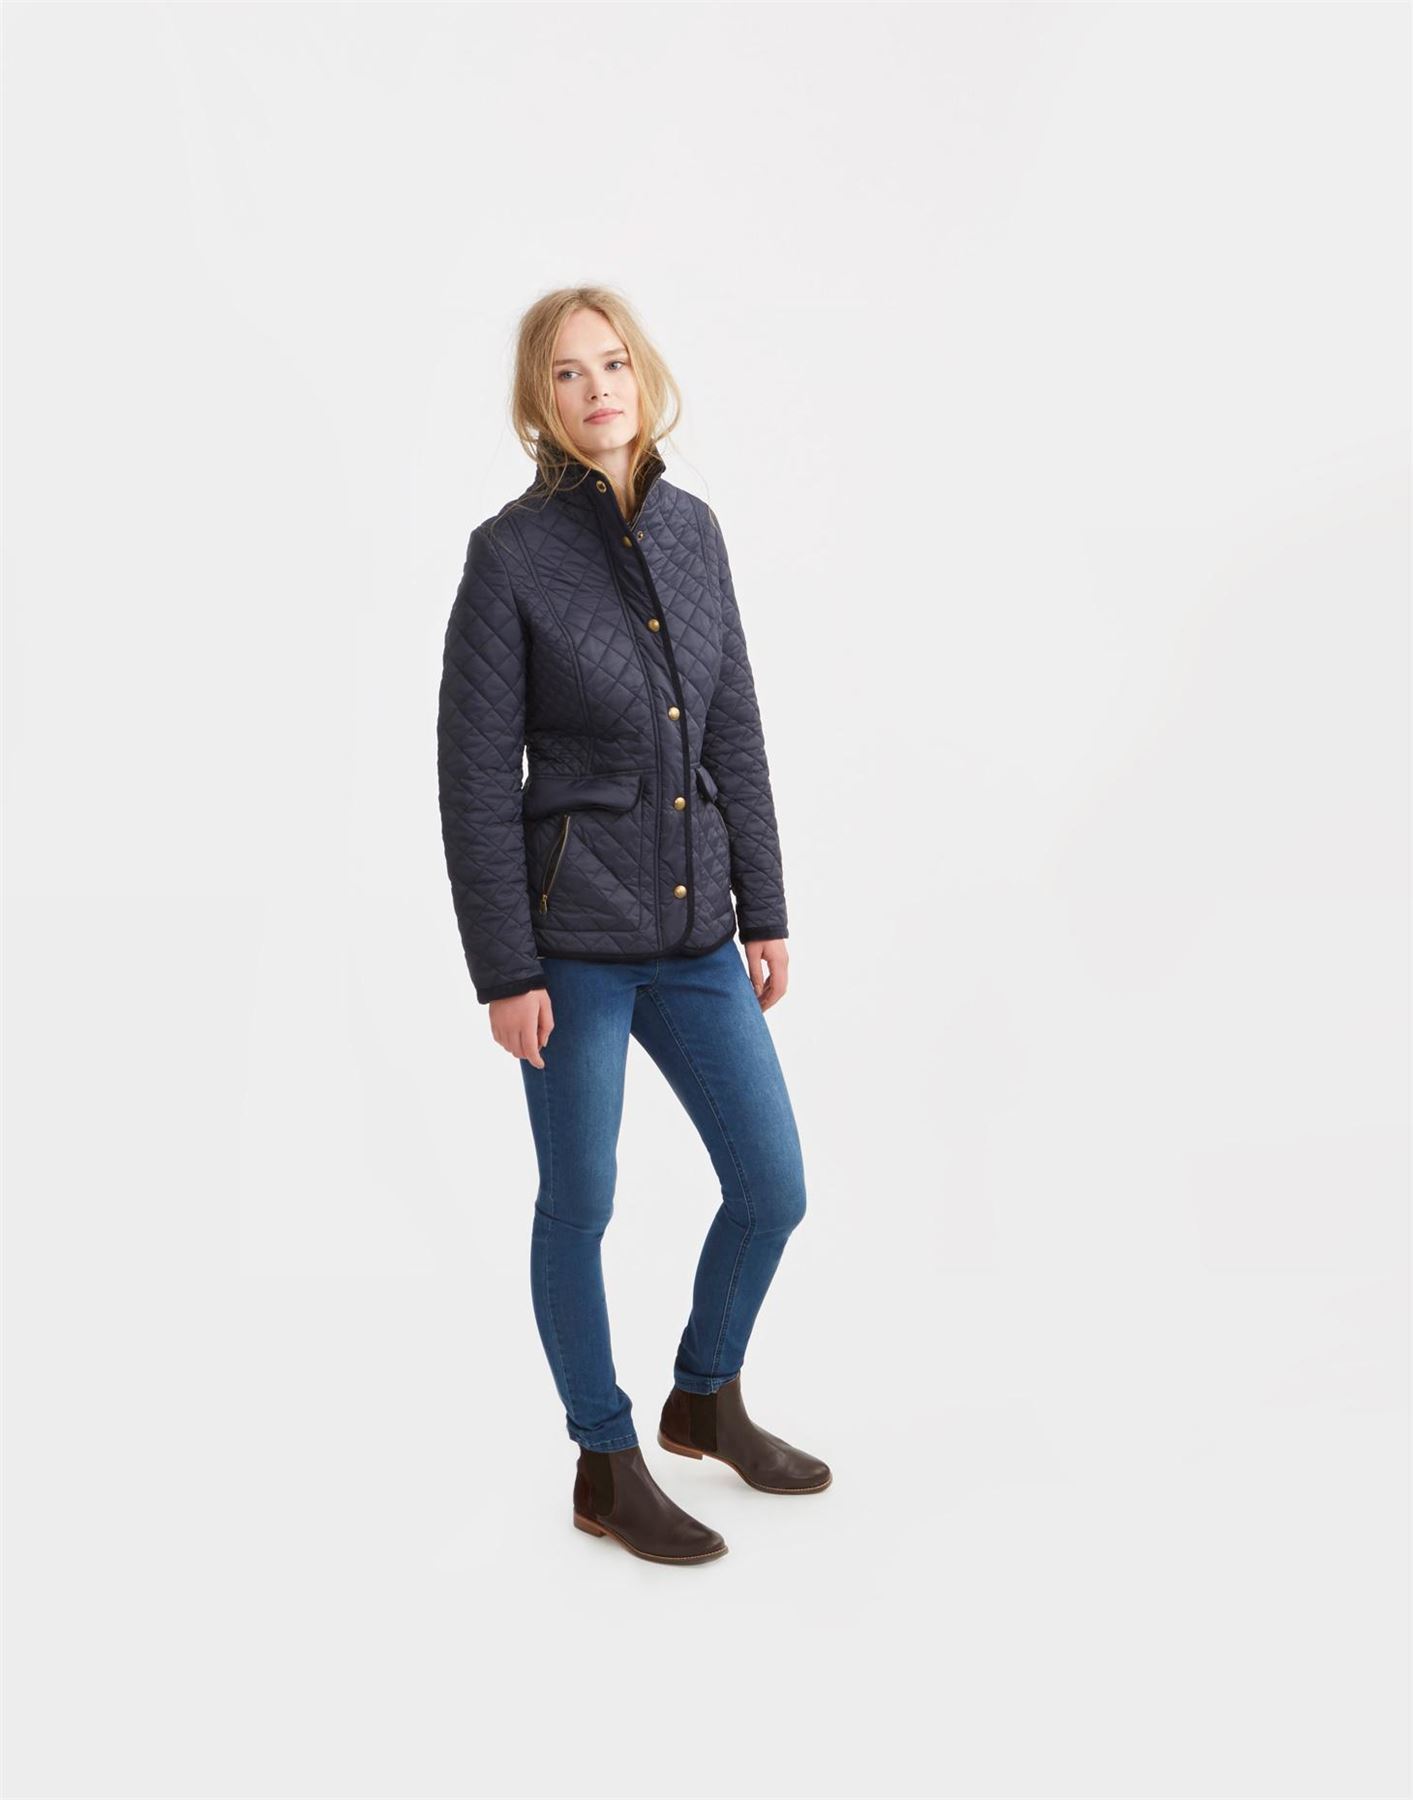 Joules Newdale Equestrian Womens Warm Country Fashion Classic ... : classic quilted jacket - Adamdwight.com